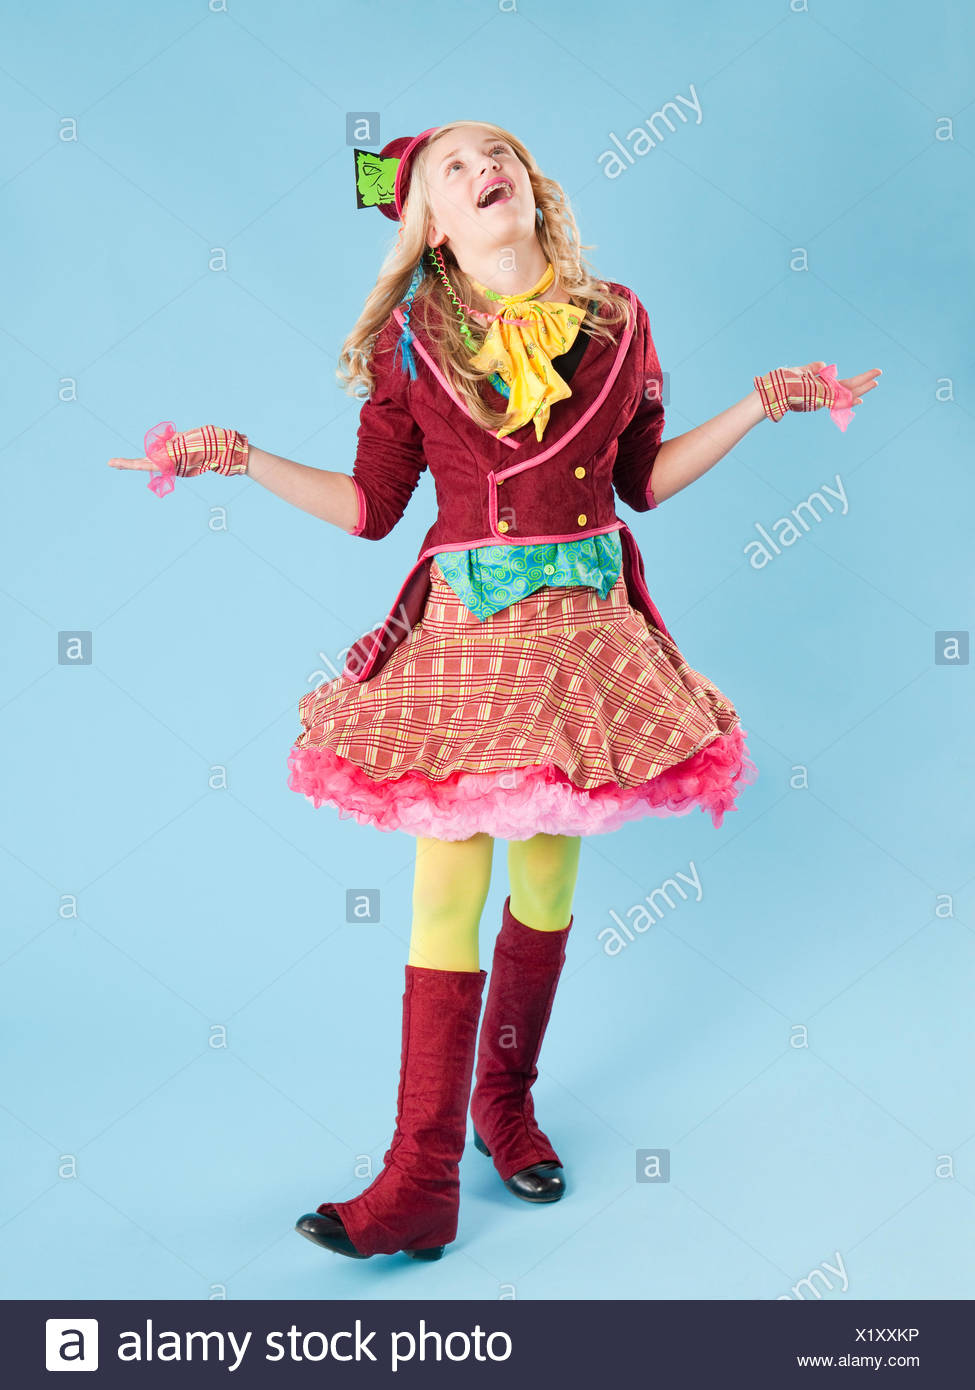 Girl (10-11) in Mad Hatter costume for Halloween - Stock Image